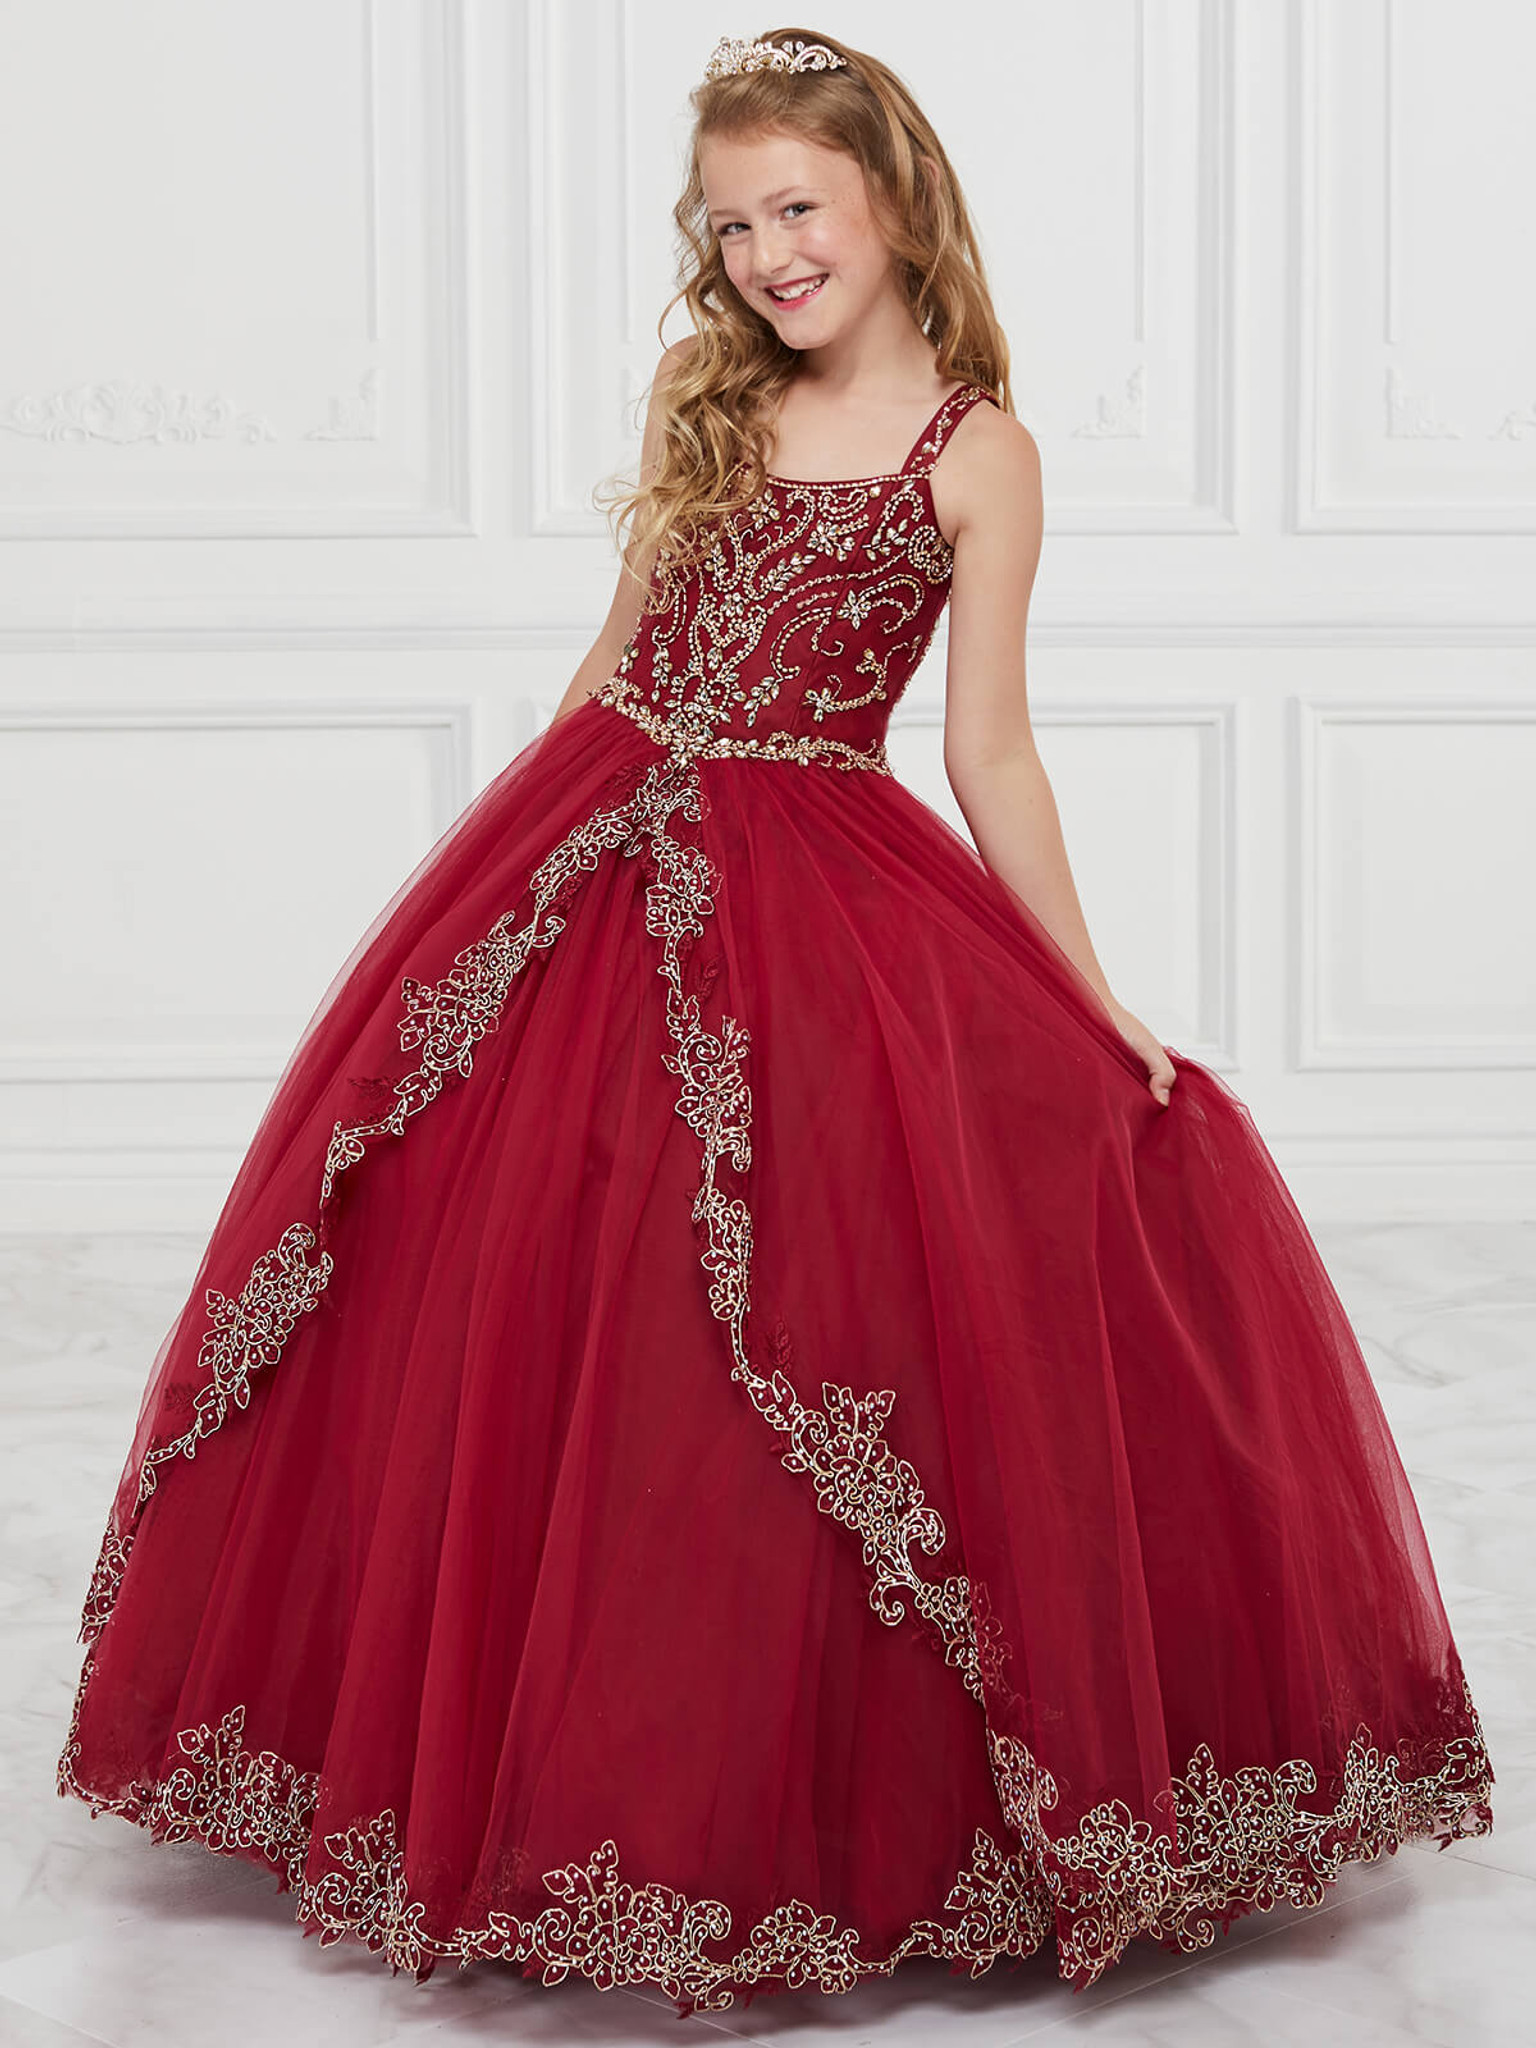 Tulle Neckline Tiffany Princess 13600 Pageant Dress PageantDesigns